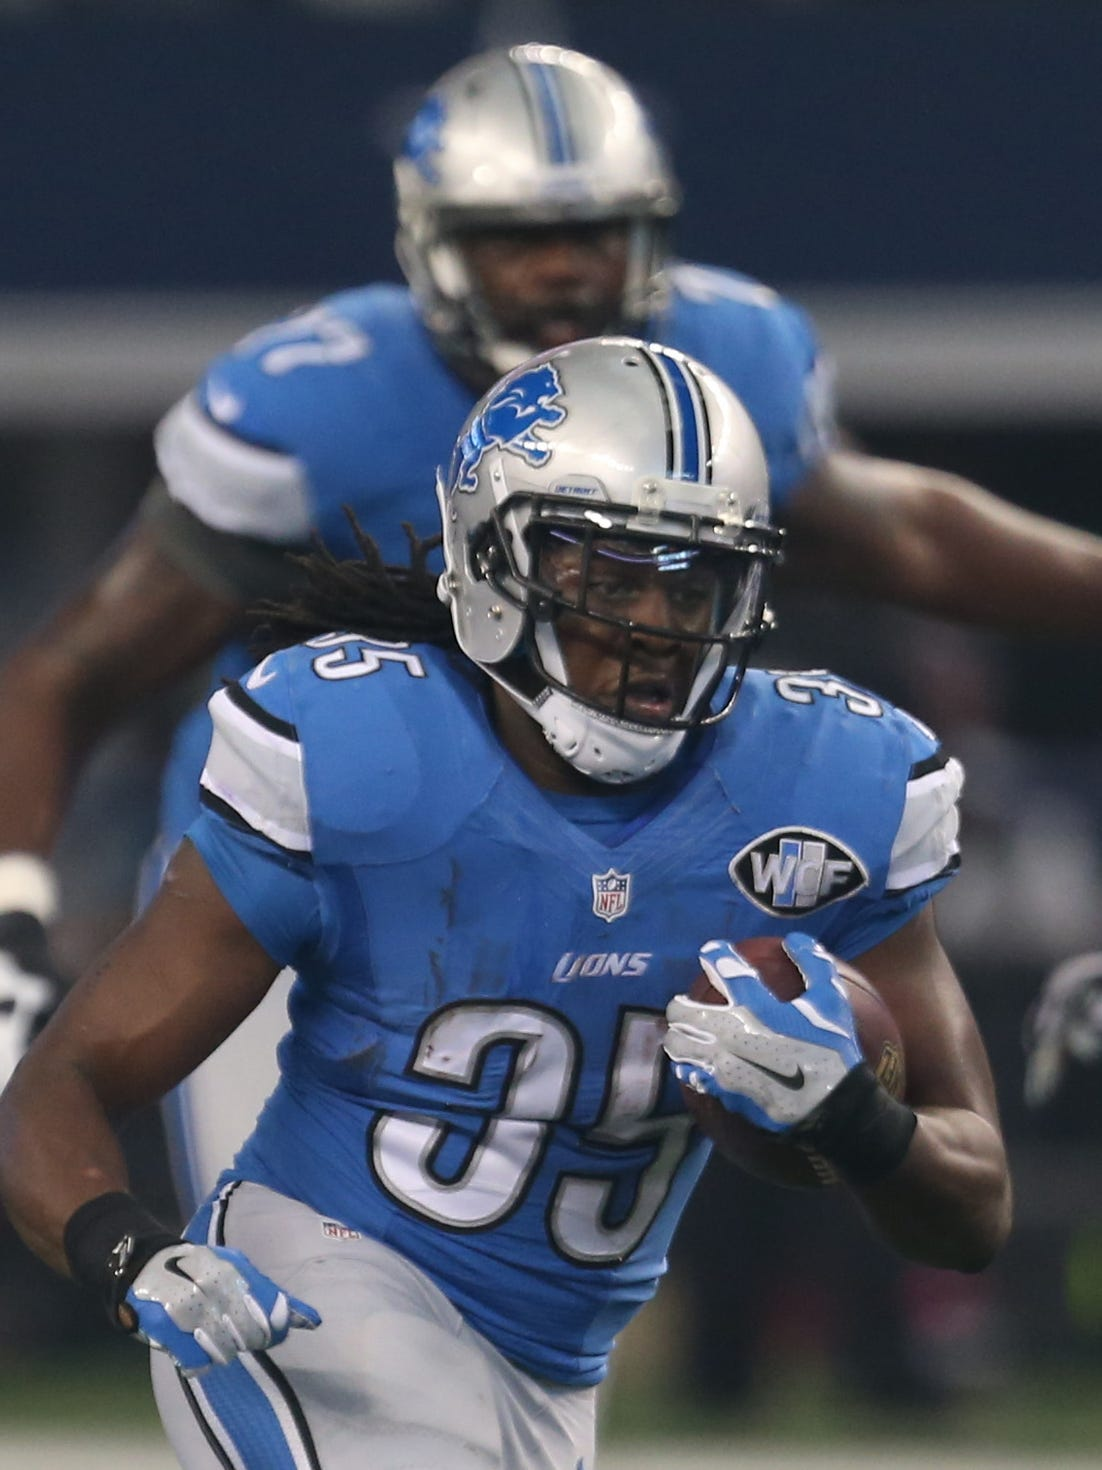 Detroit Lions' Joique Bell says return to the field is near